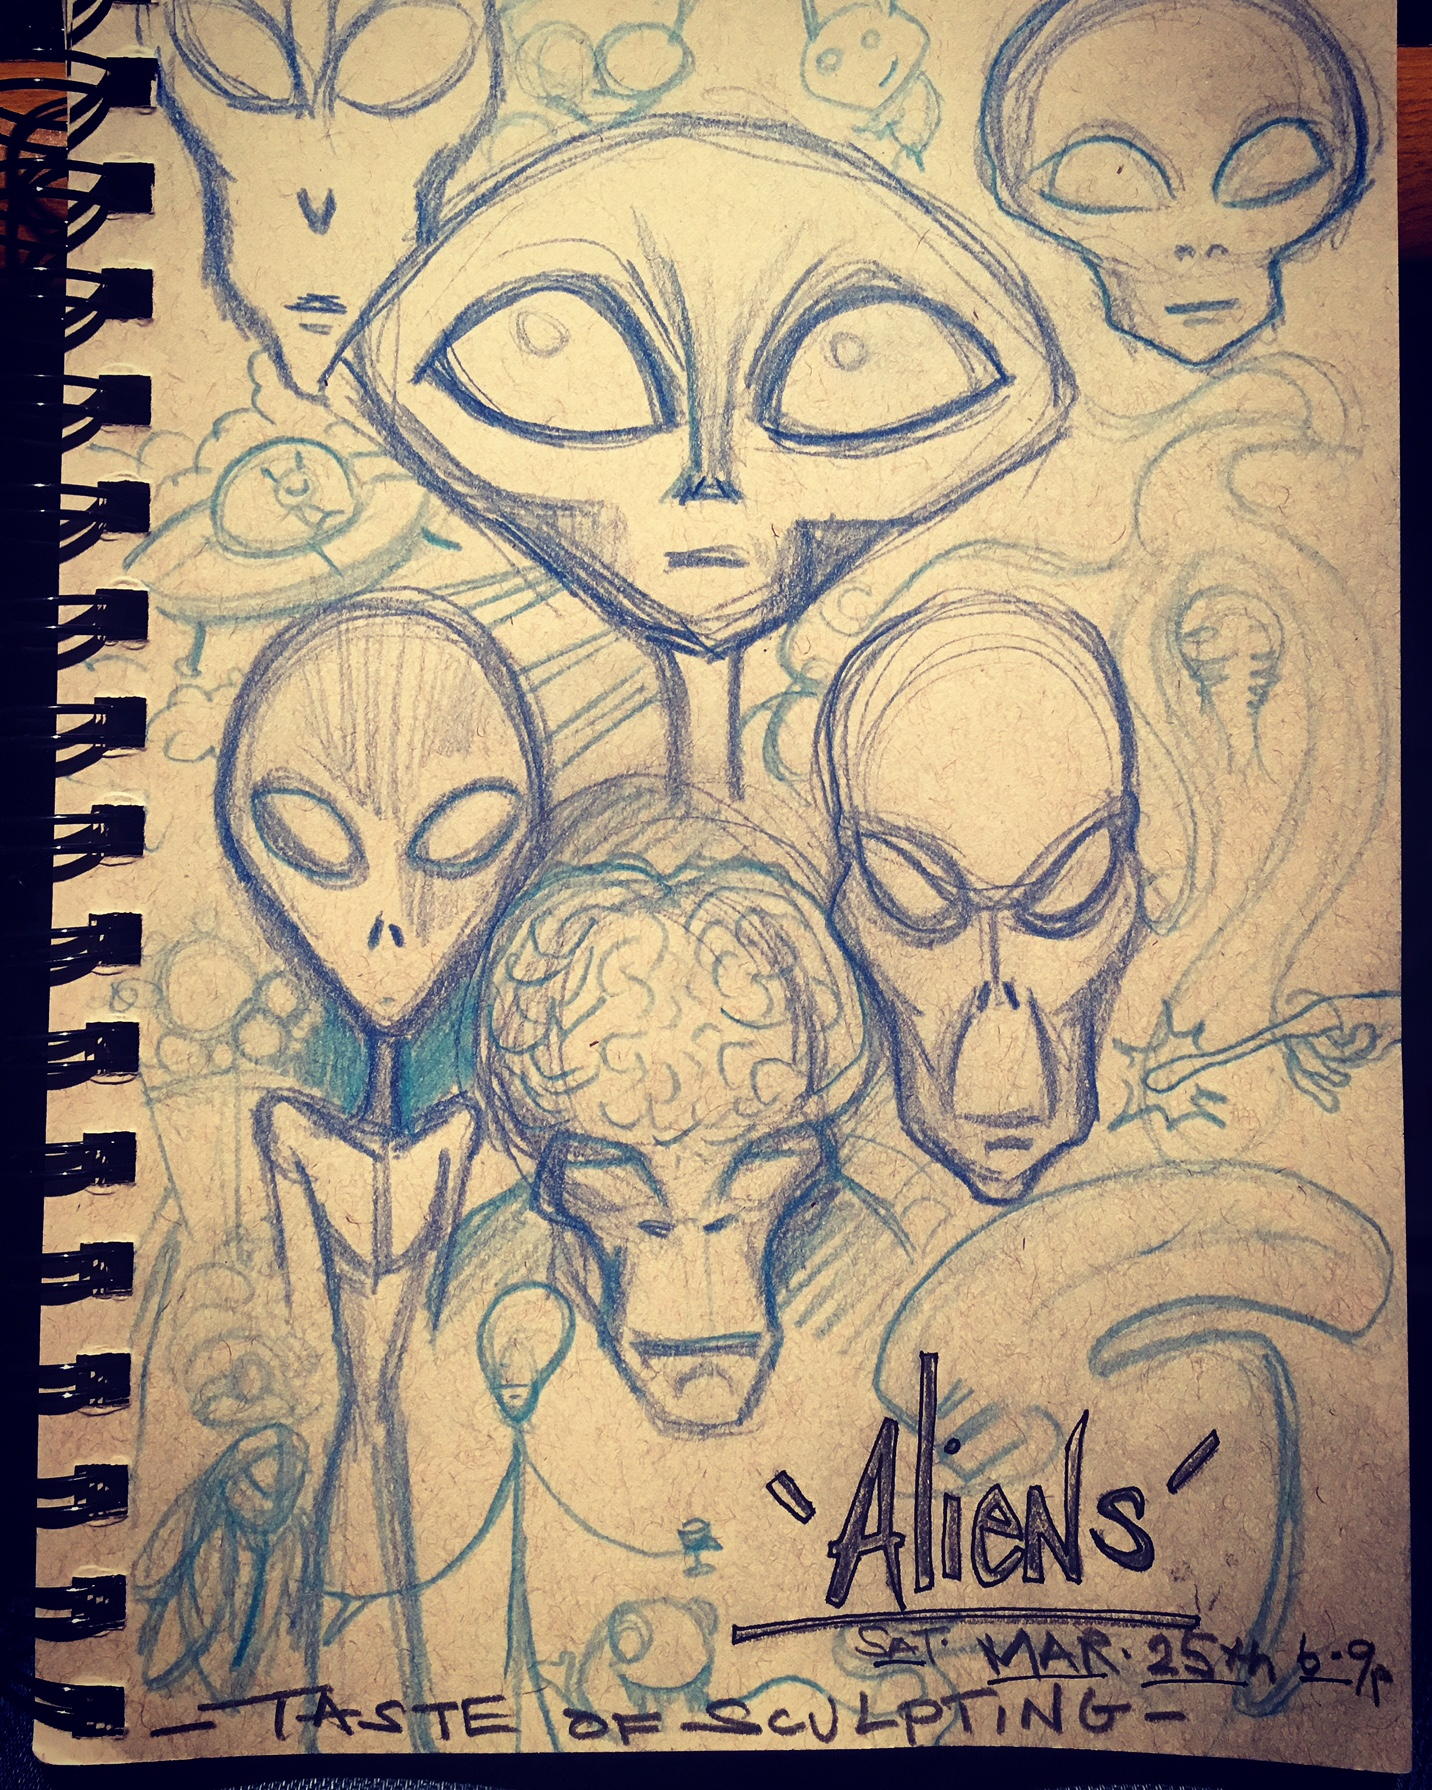 'Alien Edition' - 'Taste Of Sculpting' Workshop/ Wine TastingGet creative or bring back memories of the UFO you saw. Learn to sculpt what you may or may not have seen...While tasting 5 delicious wines.